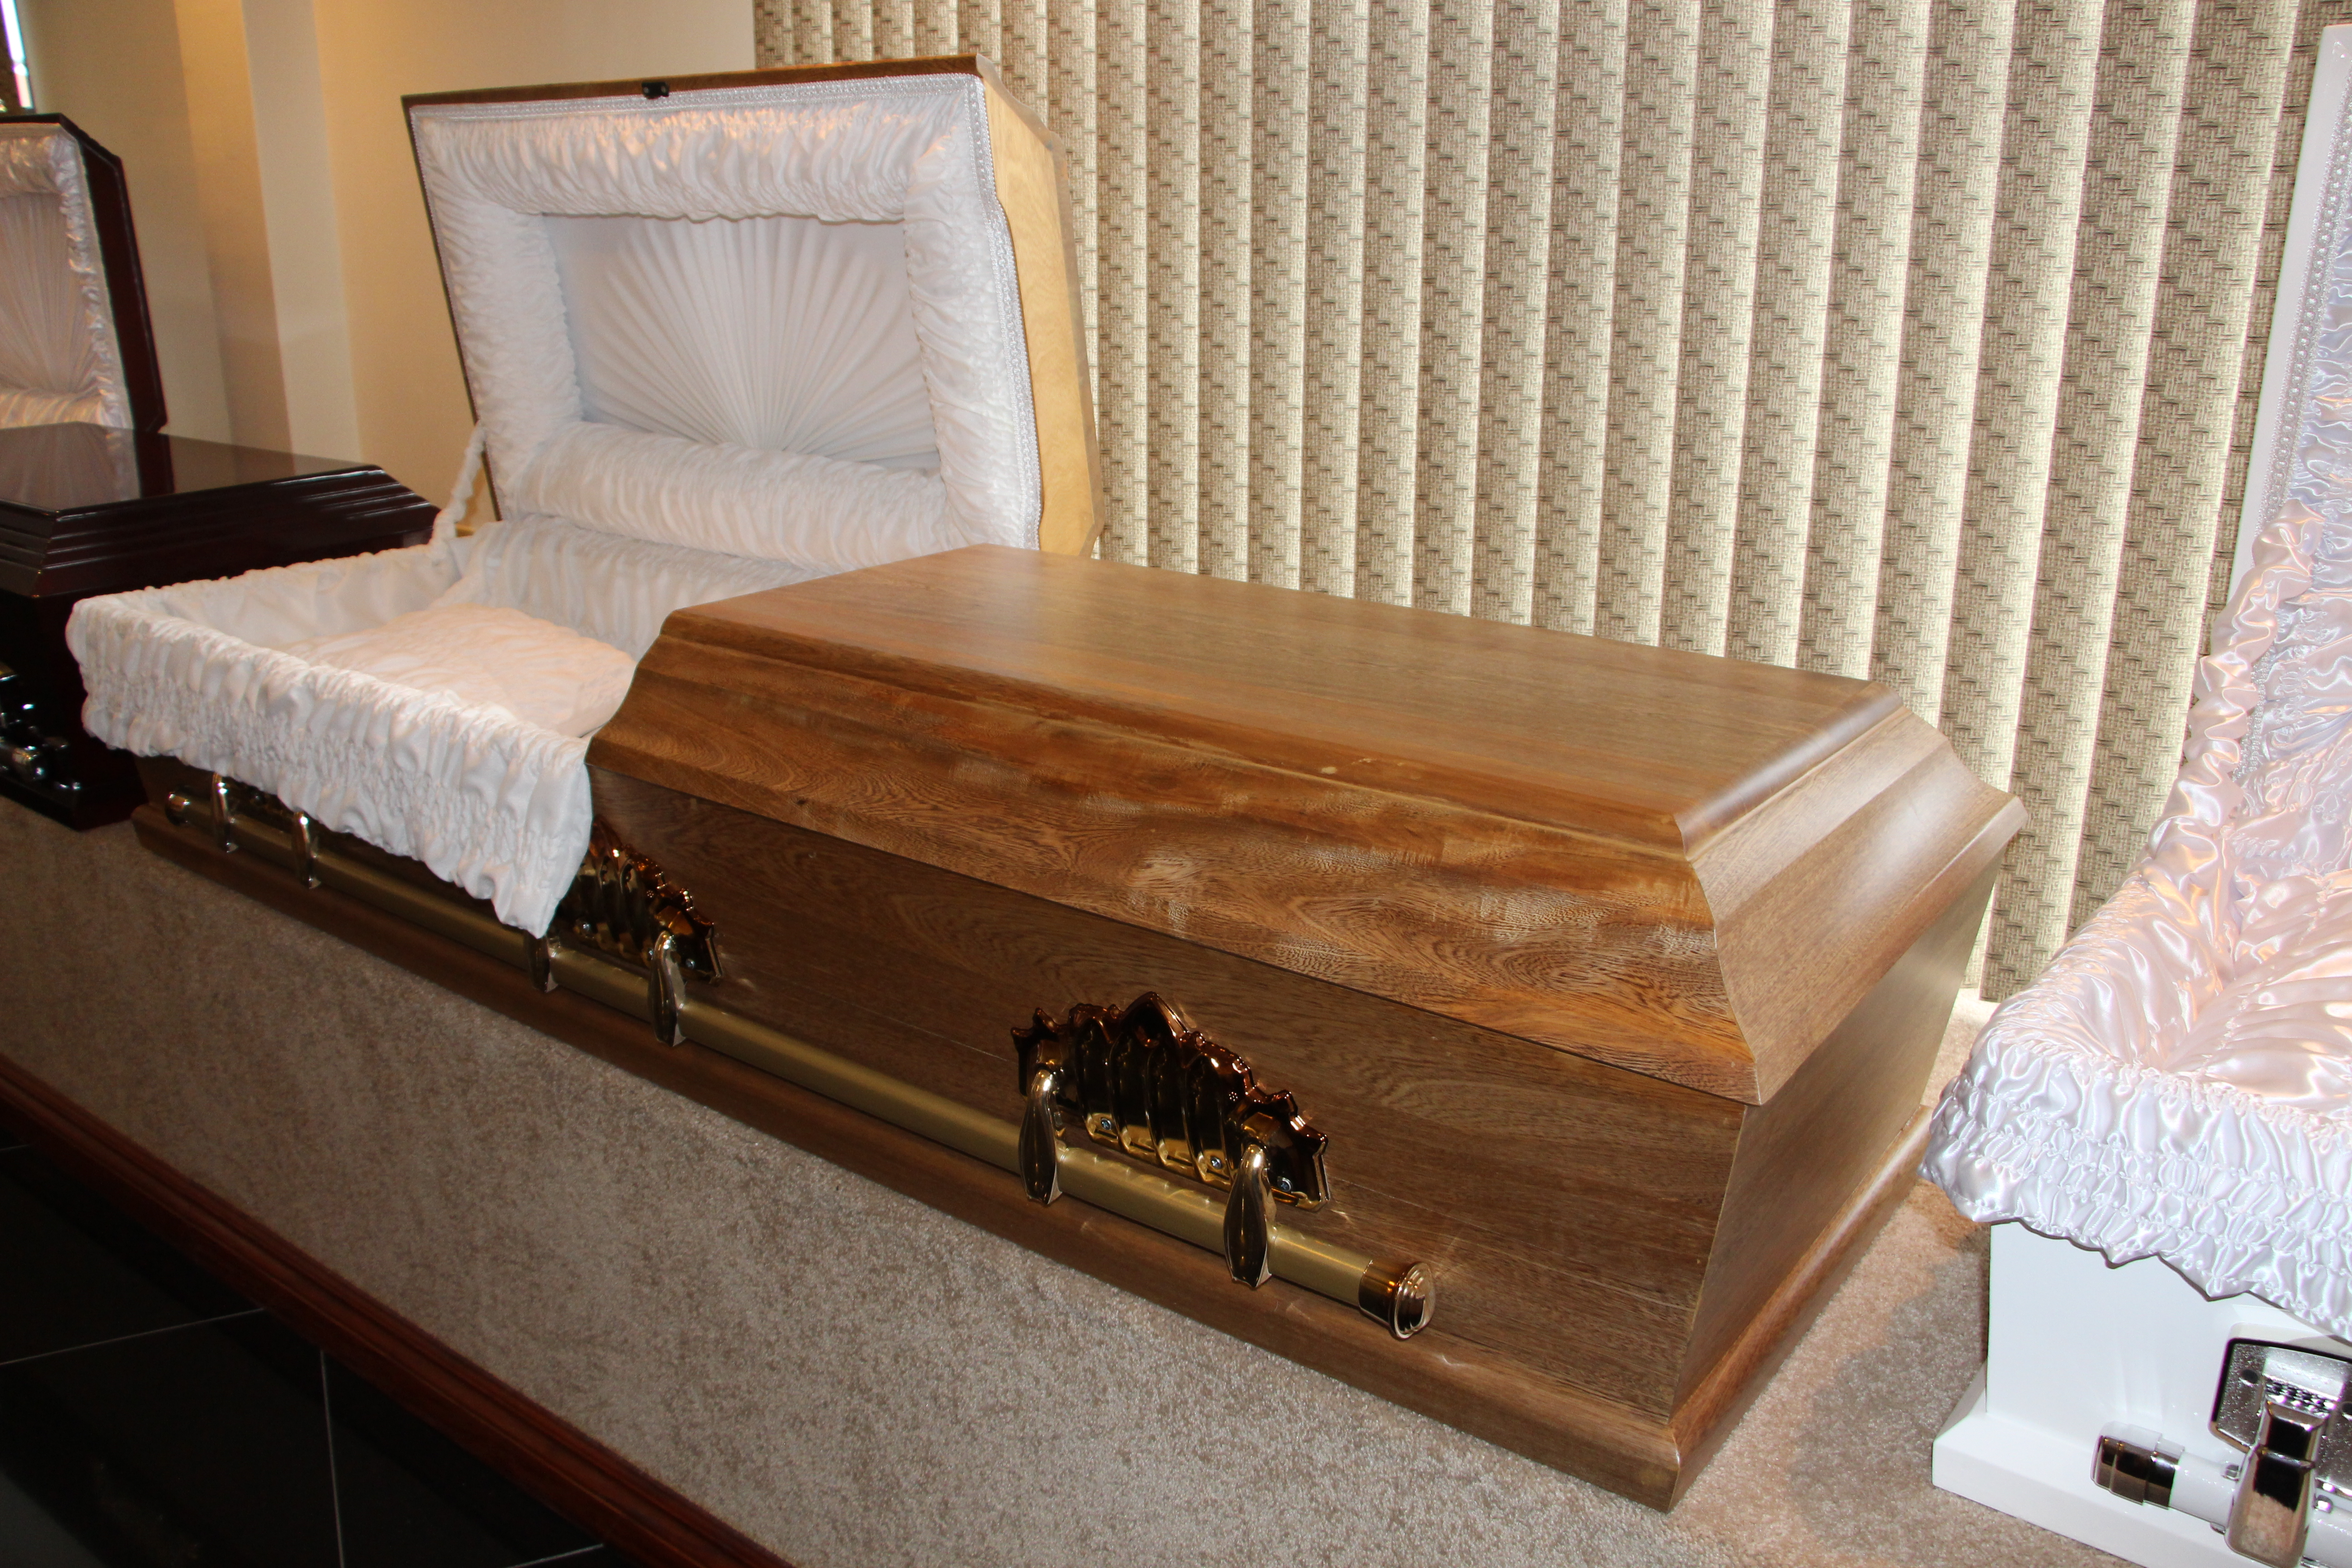 The Exterior Is Finished In Same Ornate Handles And Accessories As Standard Round Top Casket